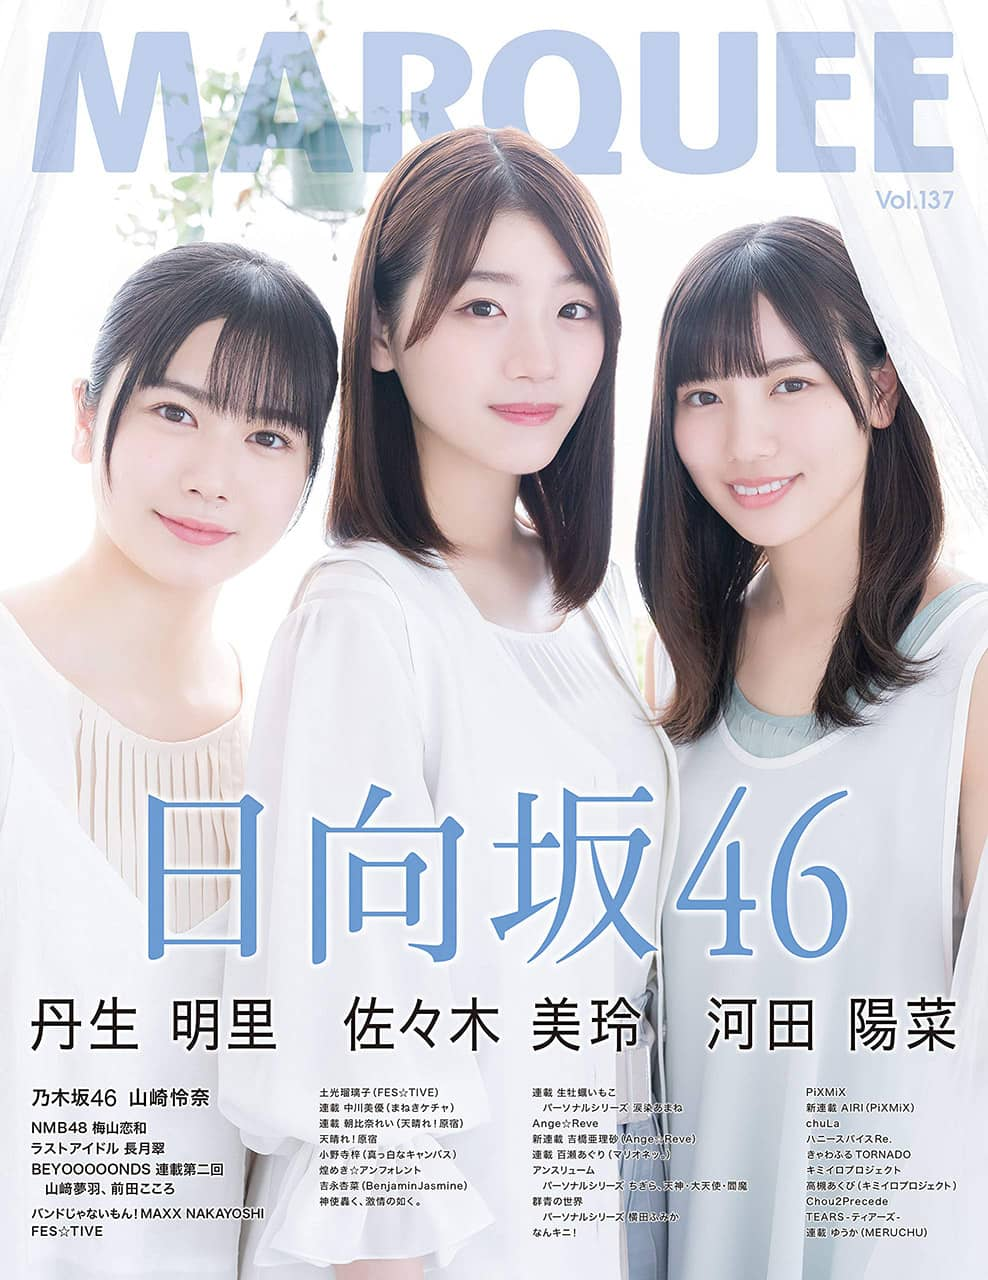 MARQUEE Vol.137